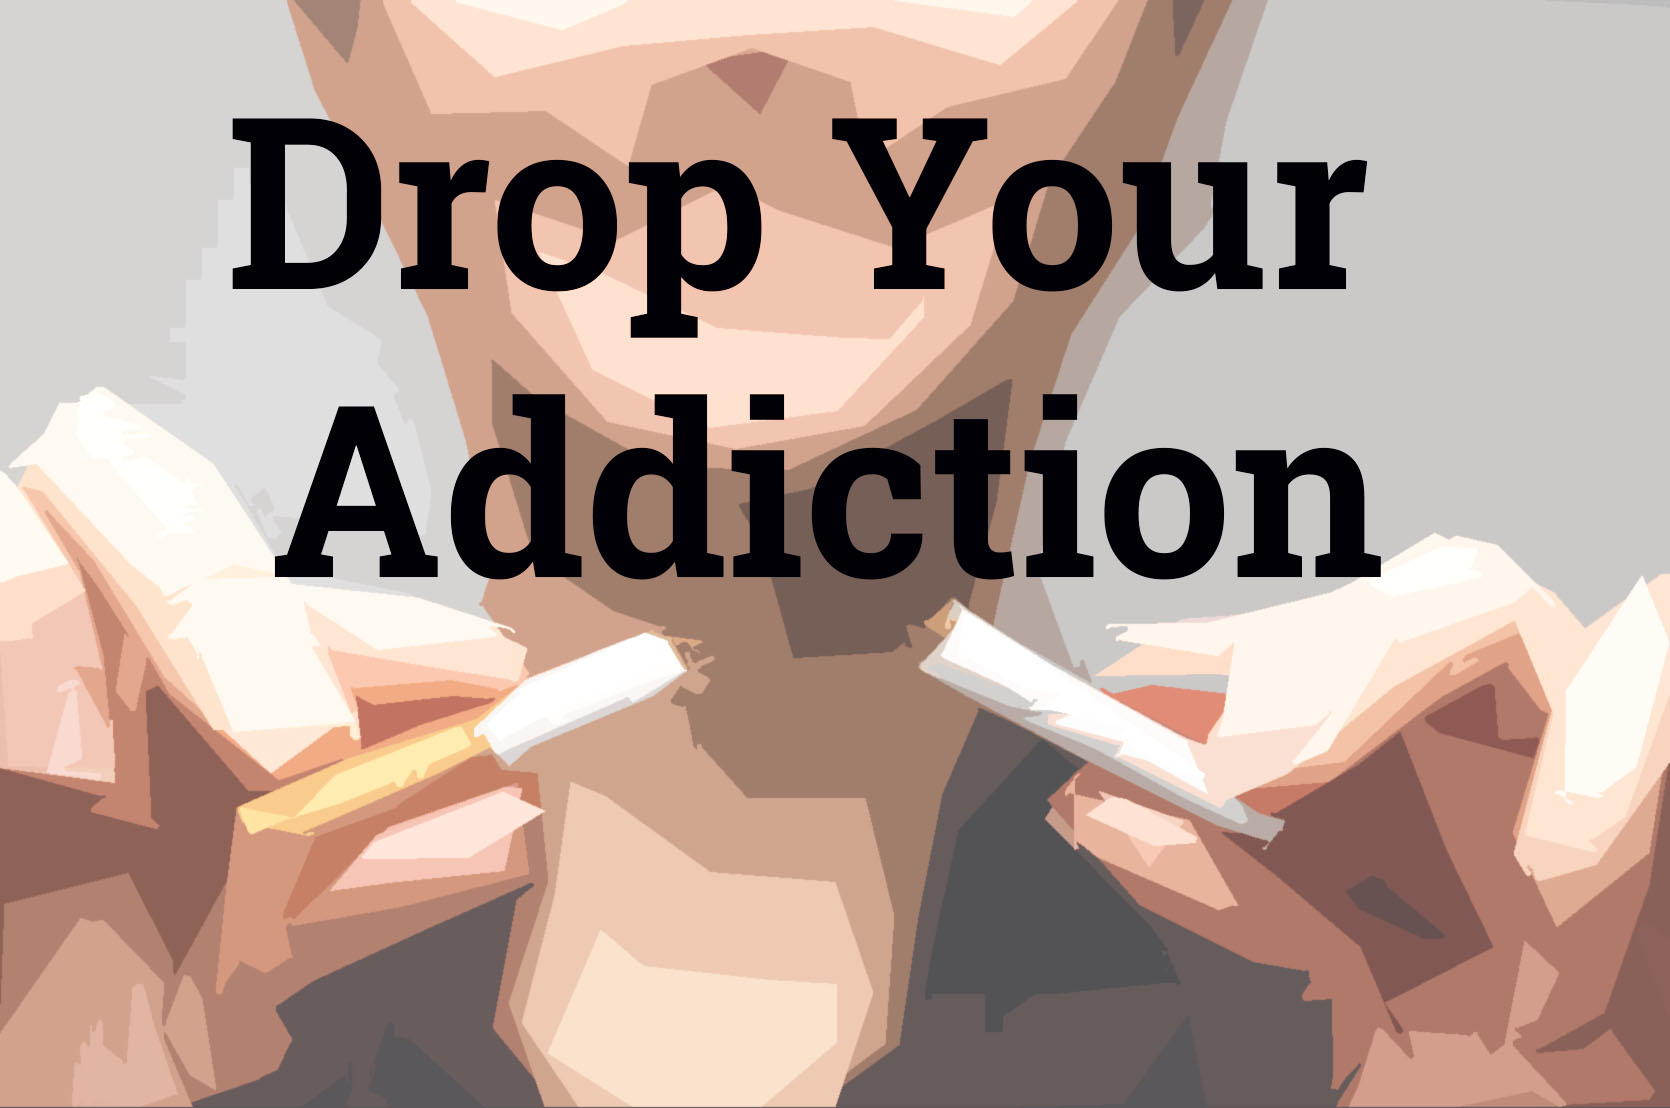 Drop cigarette addiction by smoking pure best coffeeshop amsterdam cannacentre weed coffeeshops best friends .psd